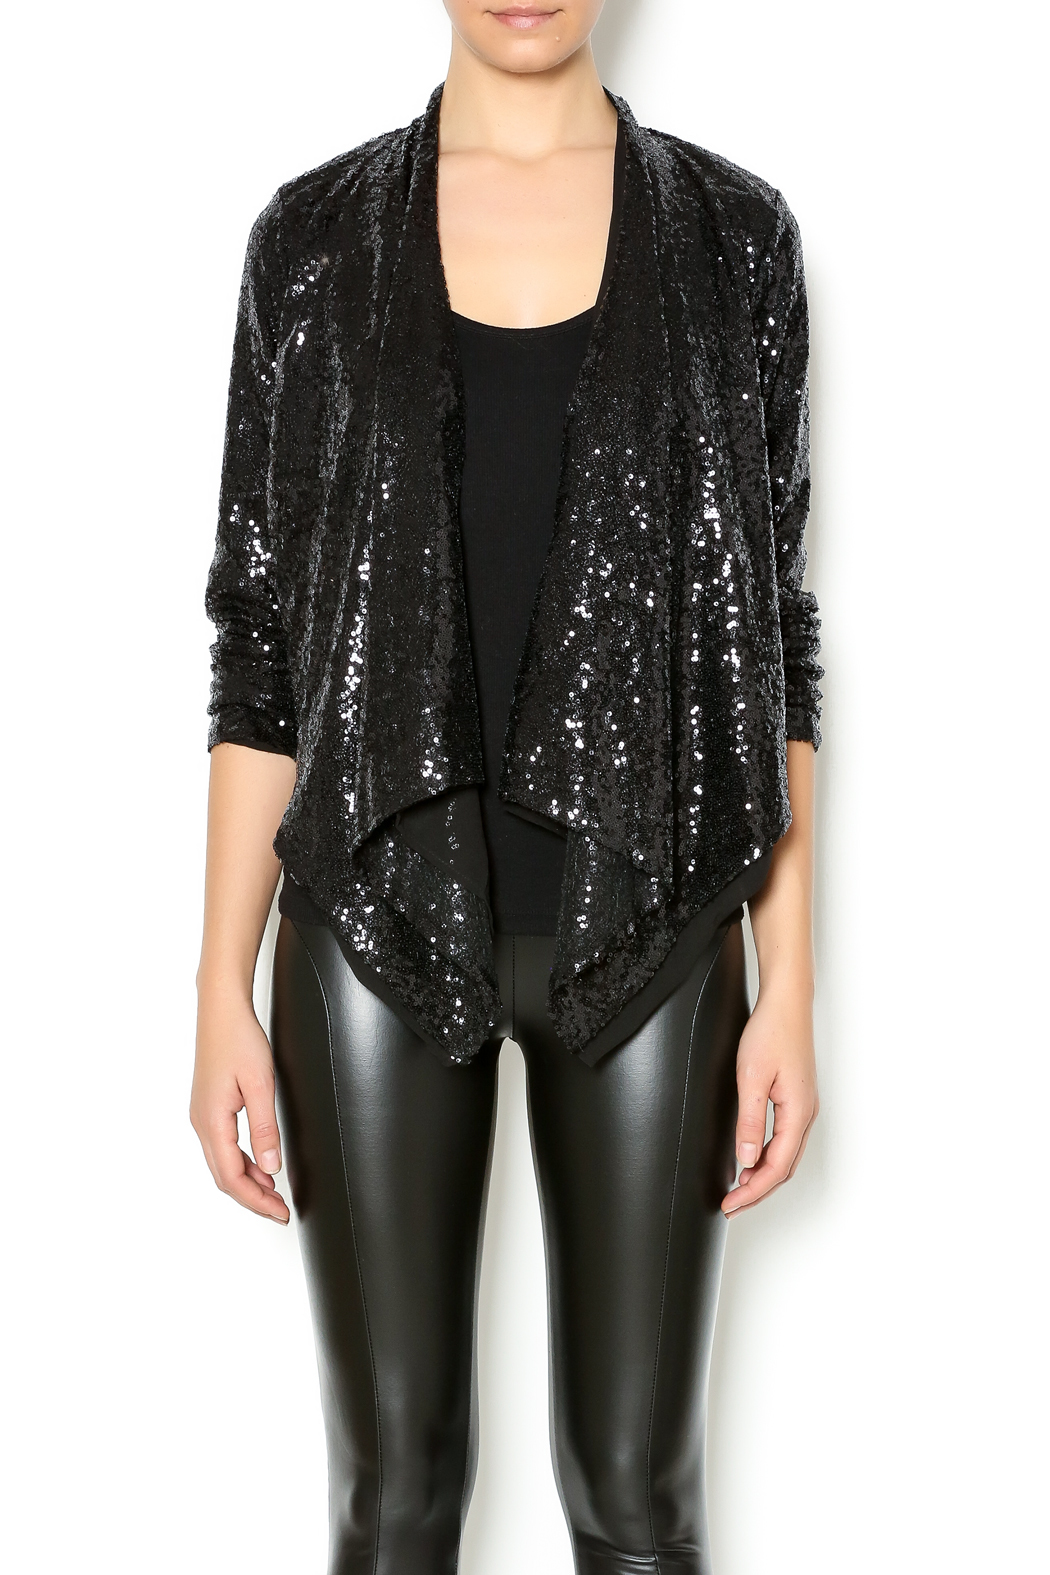 Double Zero Sequin Jacket From Alaska By Apricot Lane